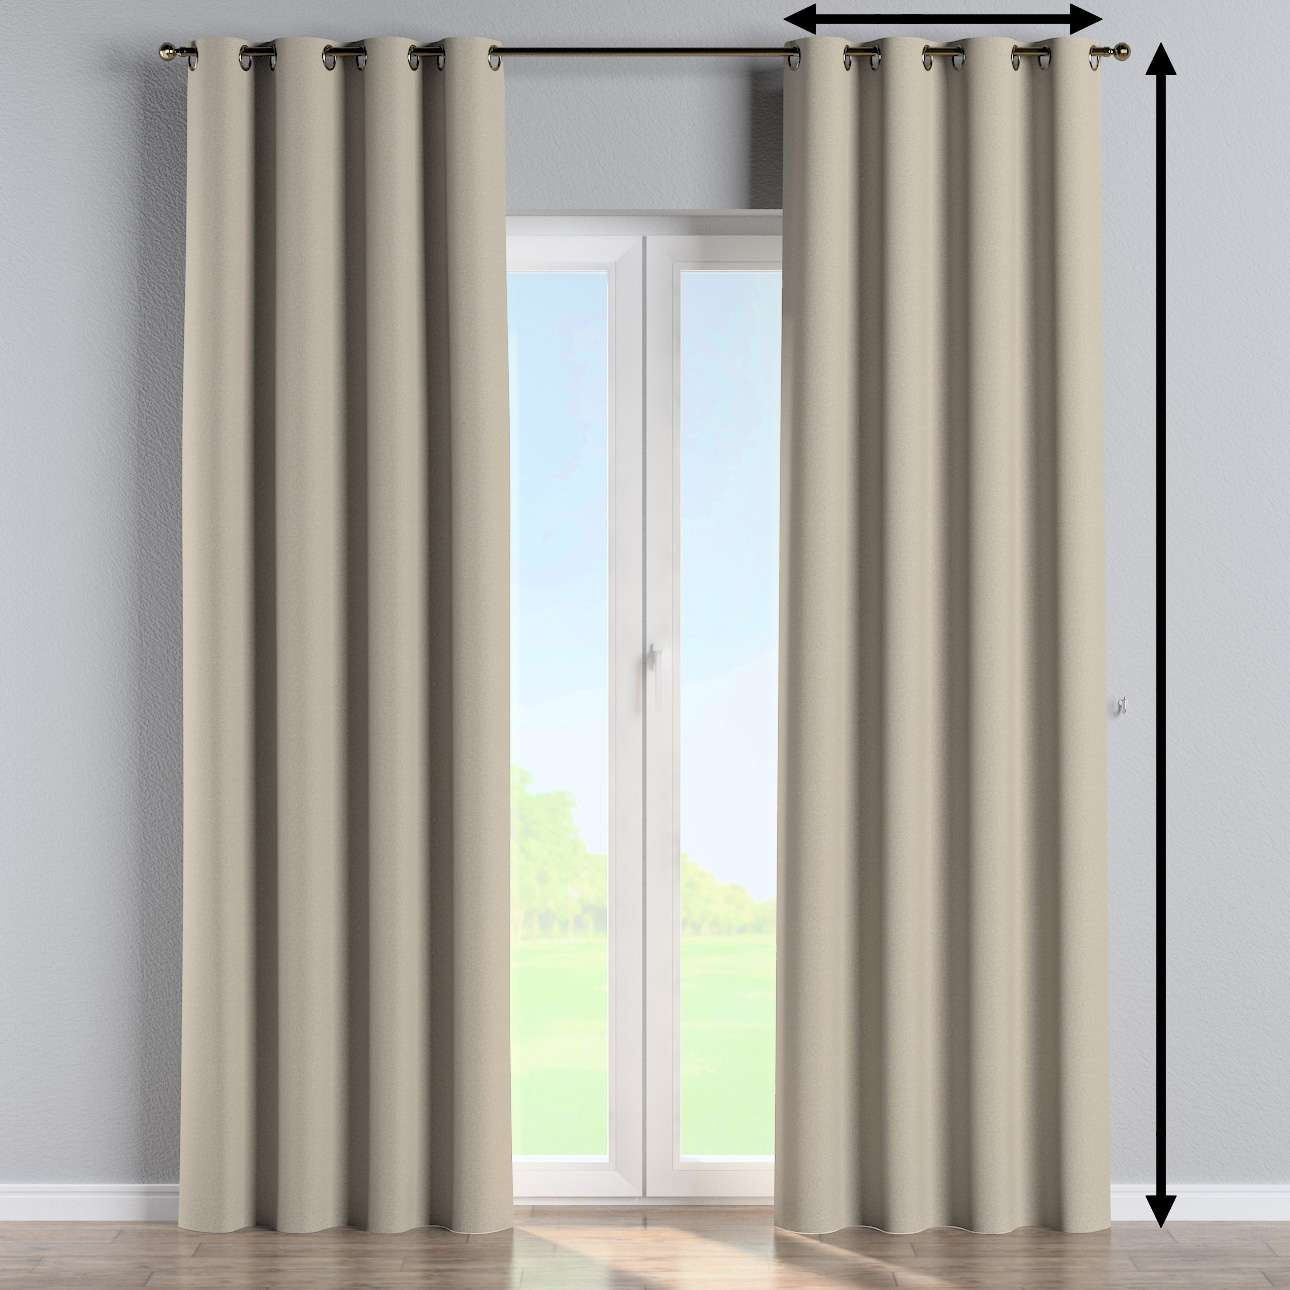 Eyelet curtain in collection Amsterdam, fabric: 704-52